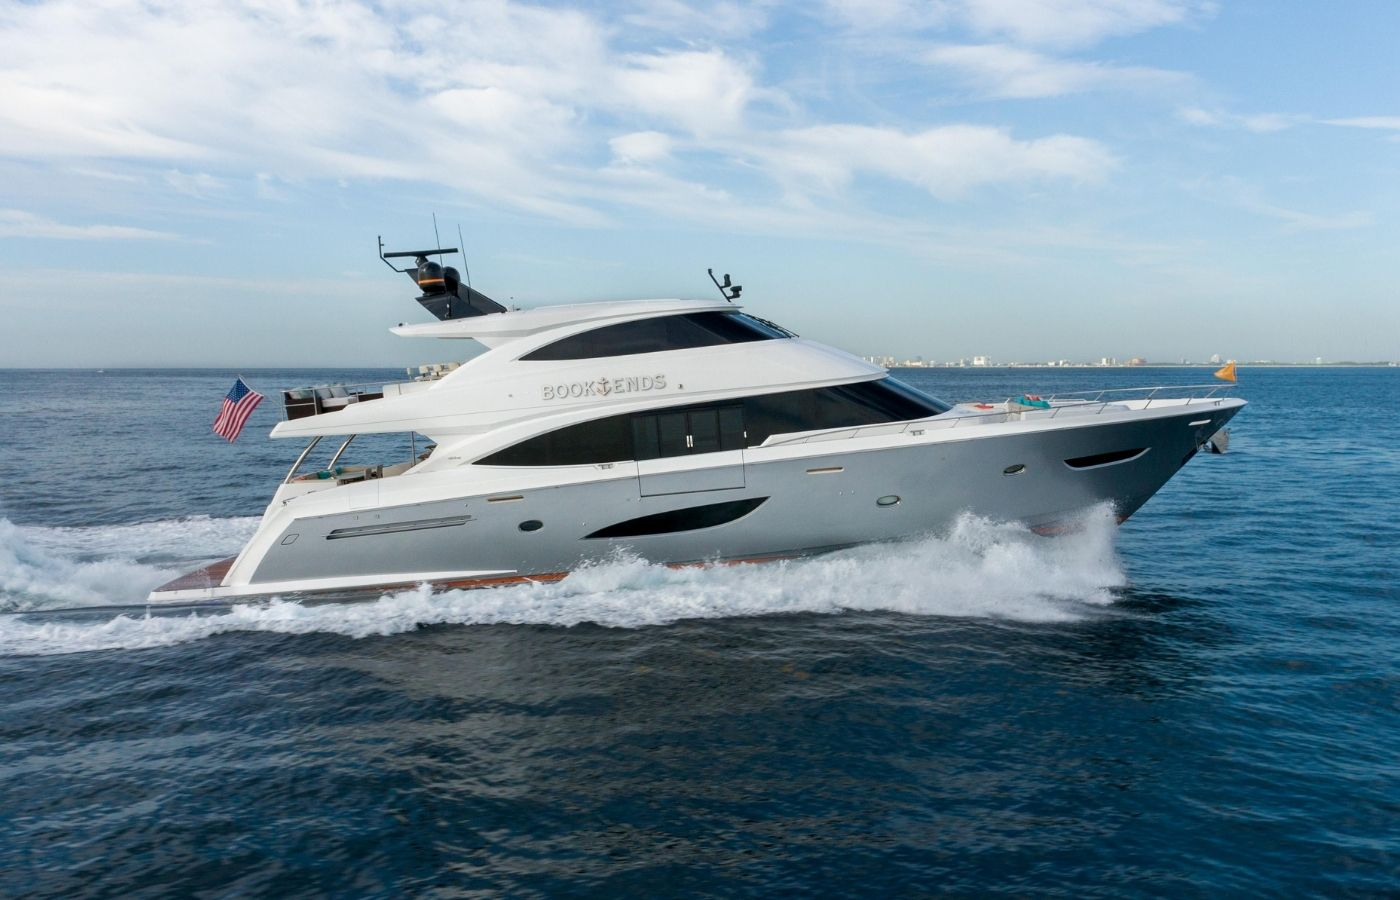 93 Viking Motor Yacht Sold By Thom Conboy + Chris Collins